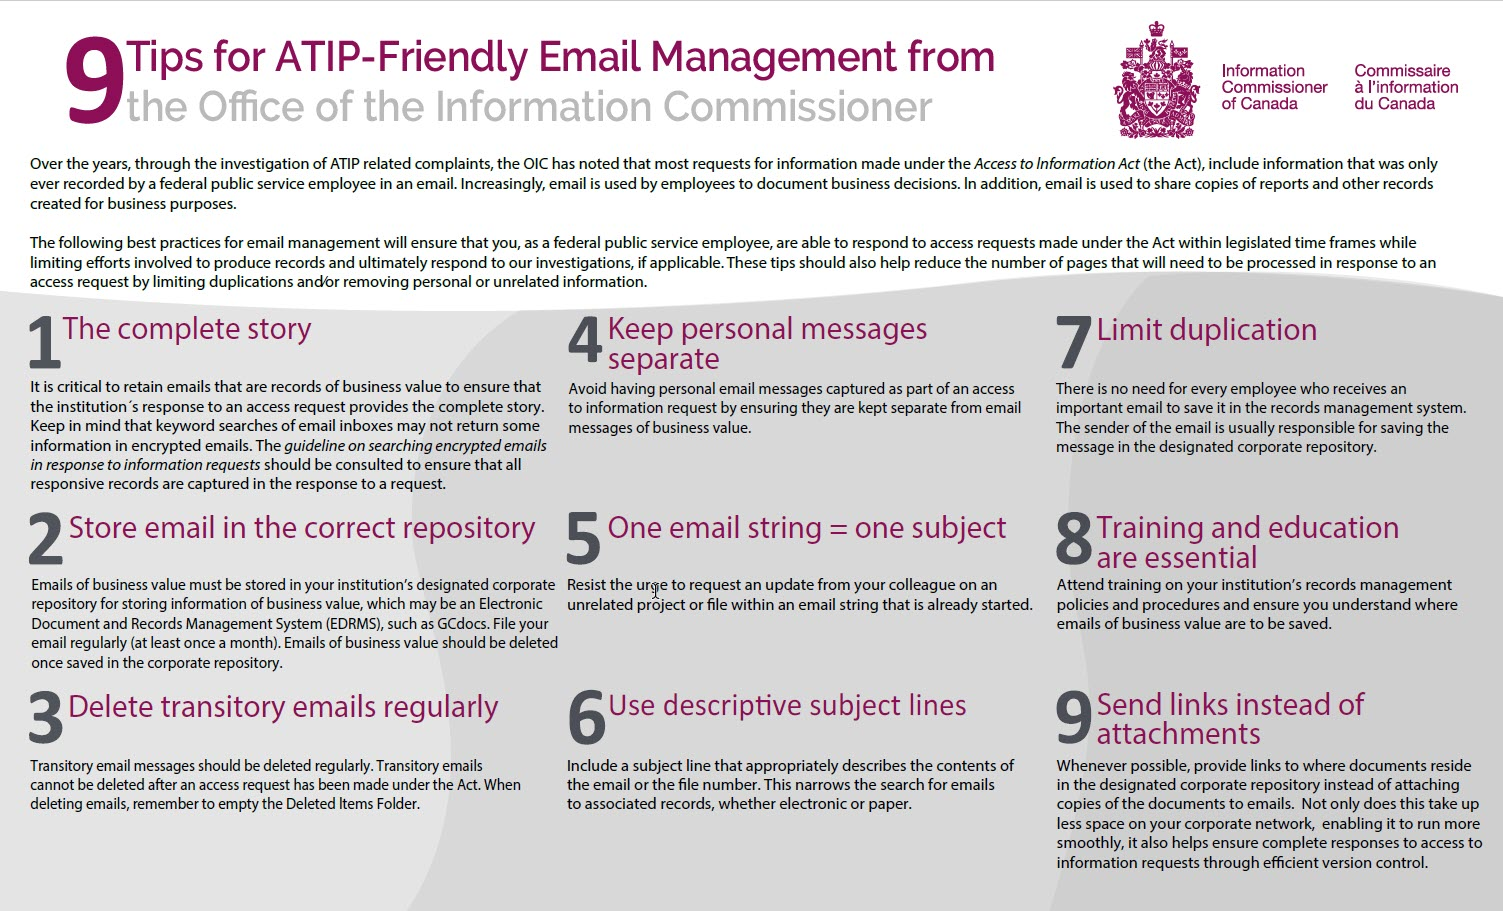 9 ATIP Email Management